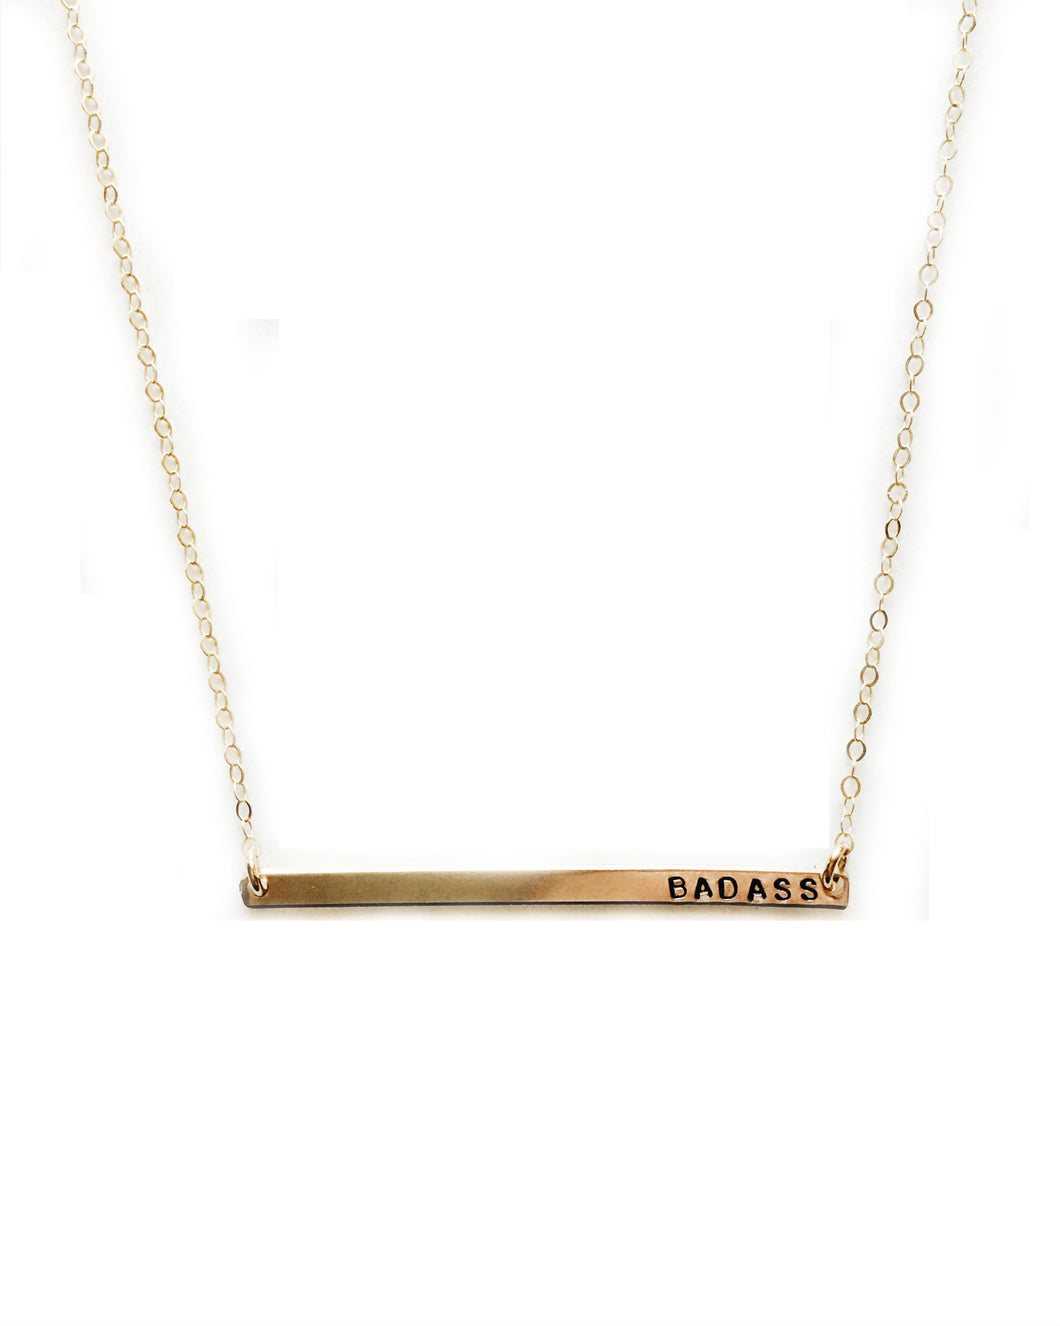 Badass Handstamped Skinny Bar Necklace